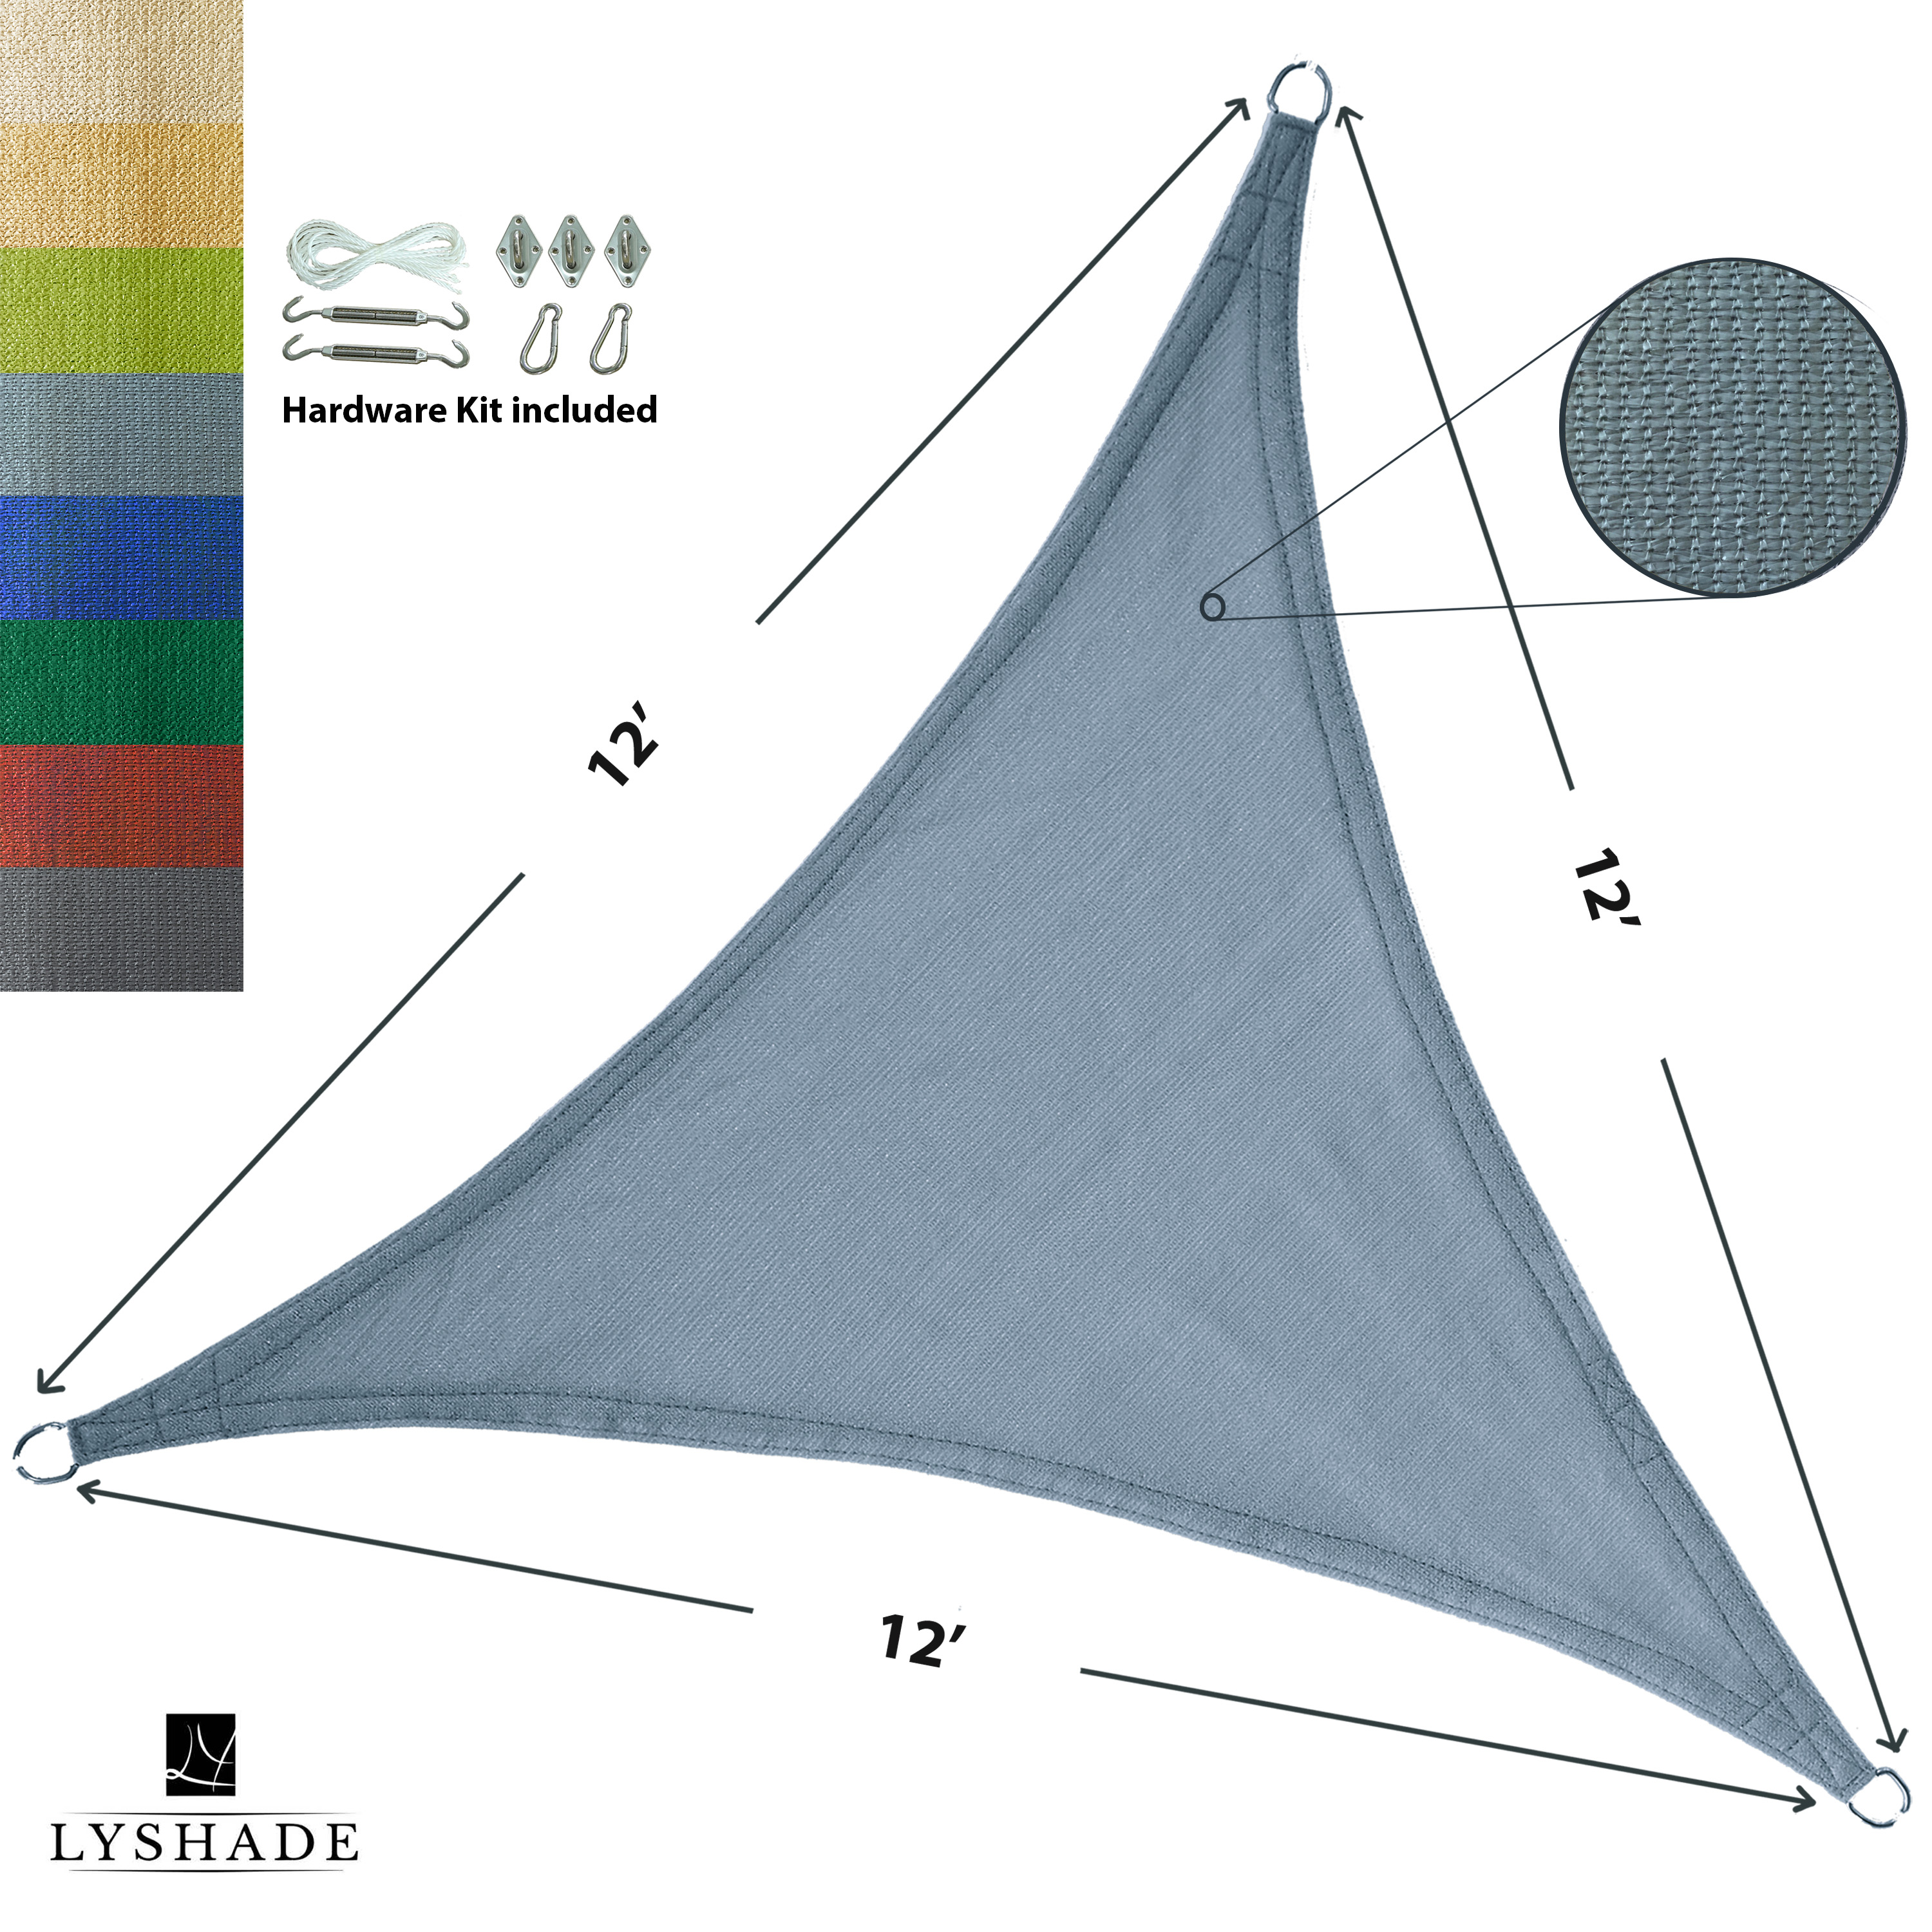 LyShade 12' x 12' x 12' Triangle Sun Shade Sail Canopy with Stainless Steel Hardware Kit - UV Block for Patio and Outdoor